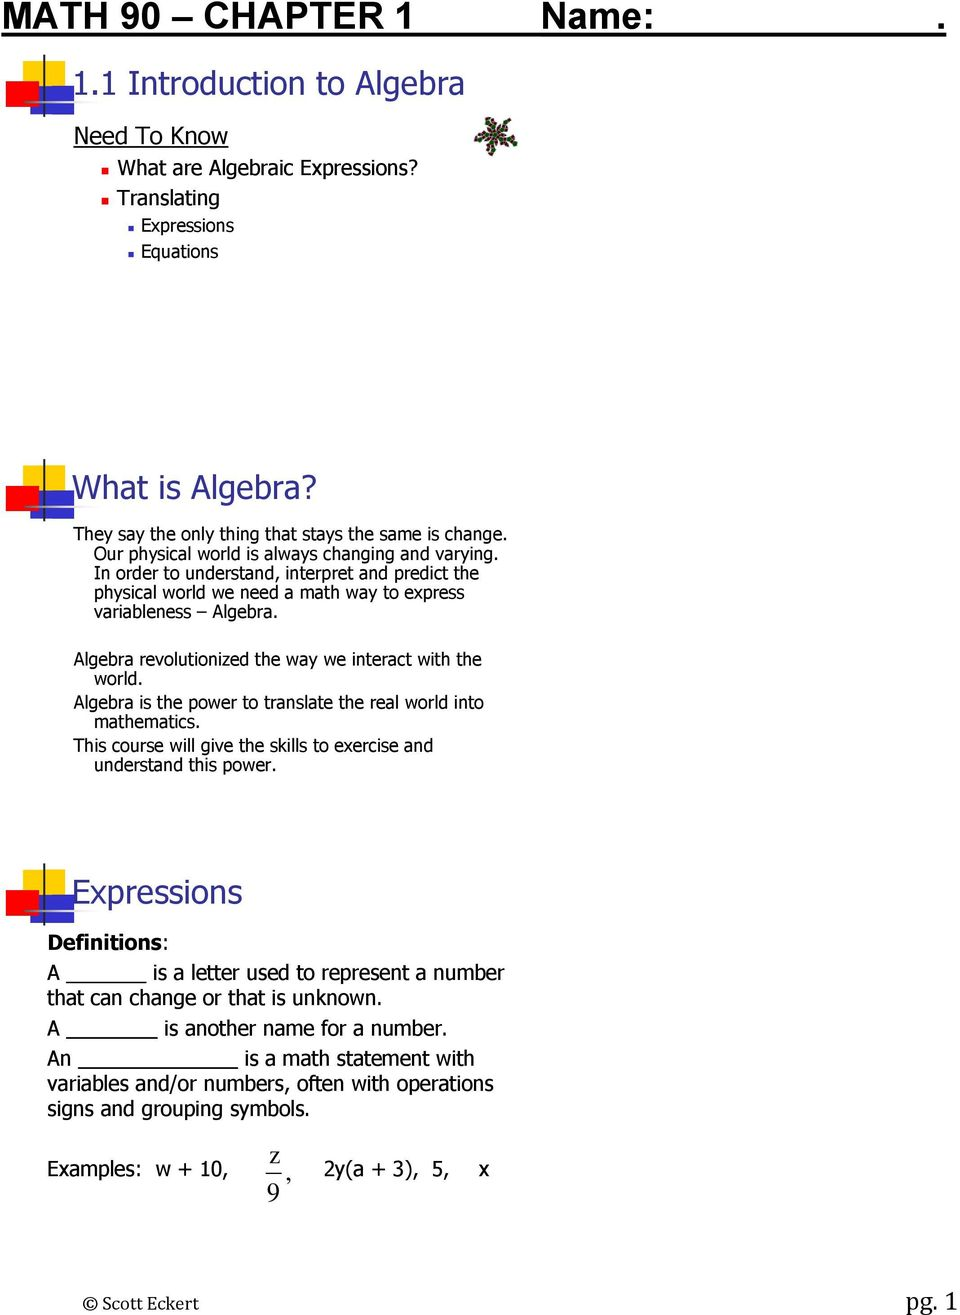 MATH 90 CHAPTER 1 Name:. - PDF Free Download Mathway Difference Quotient on